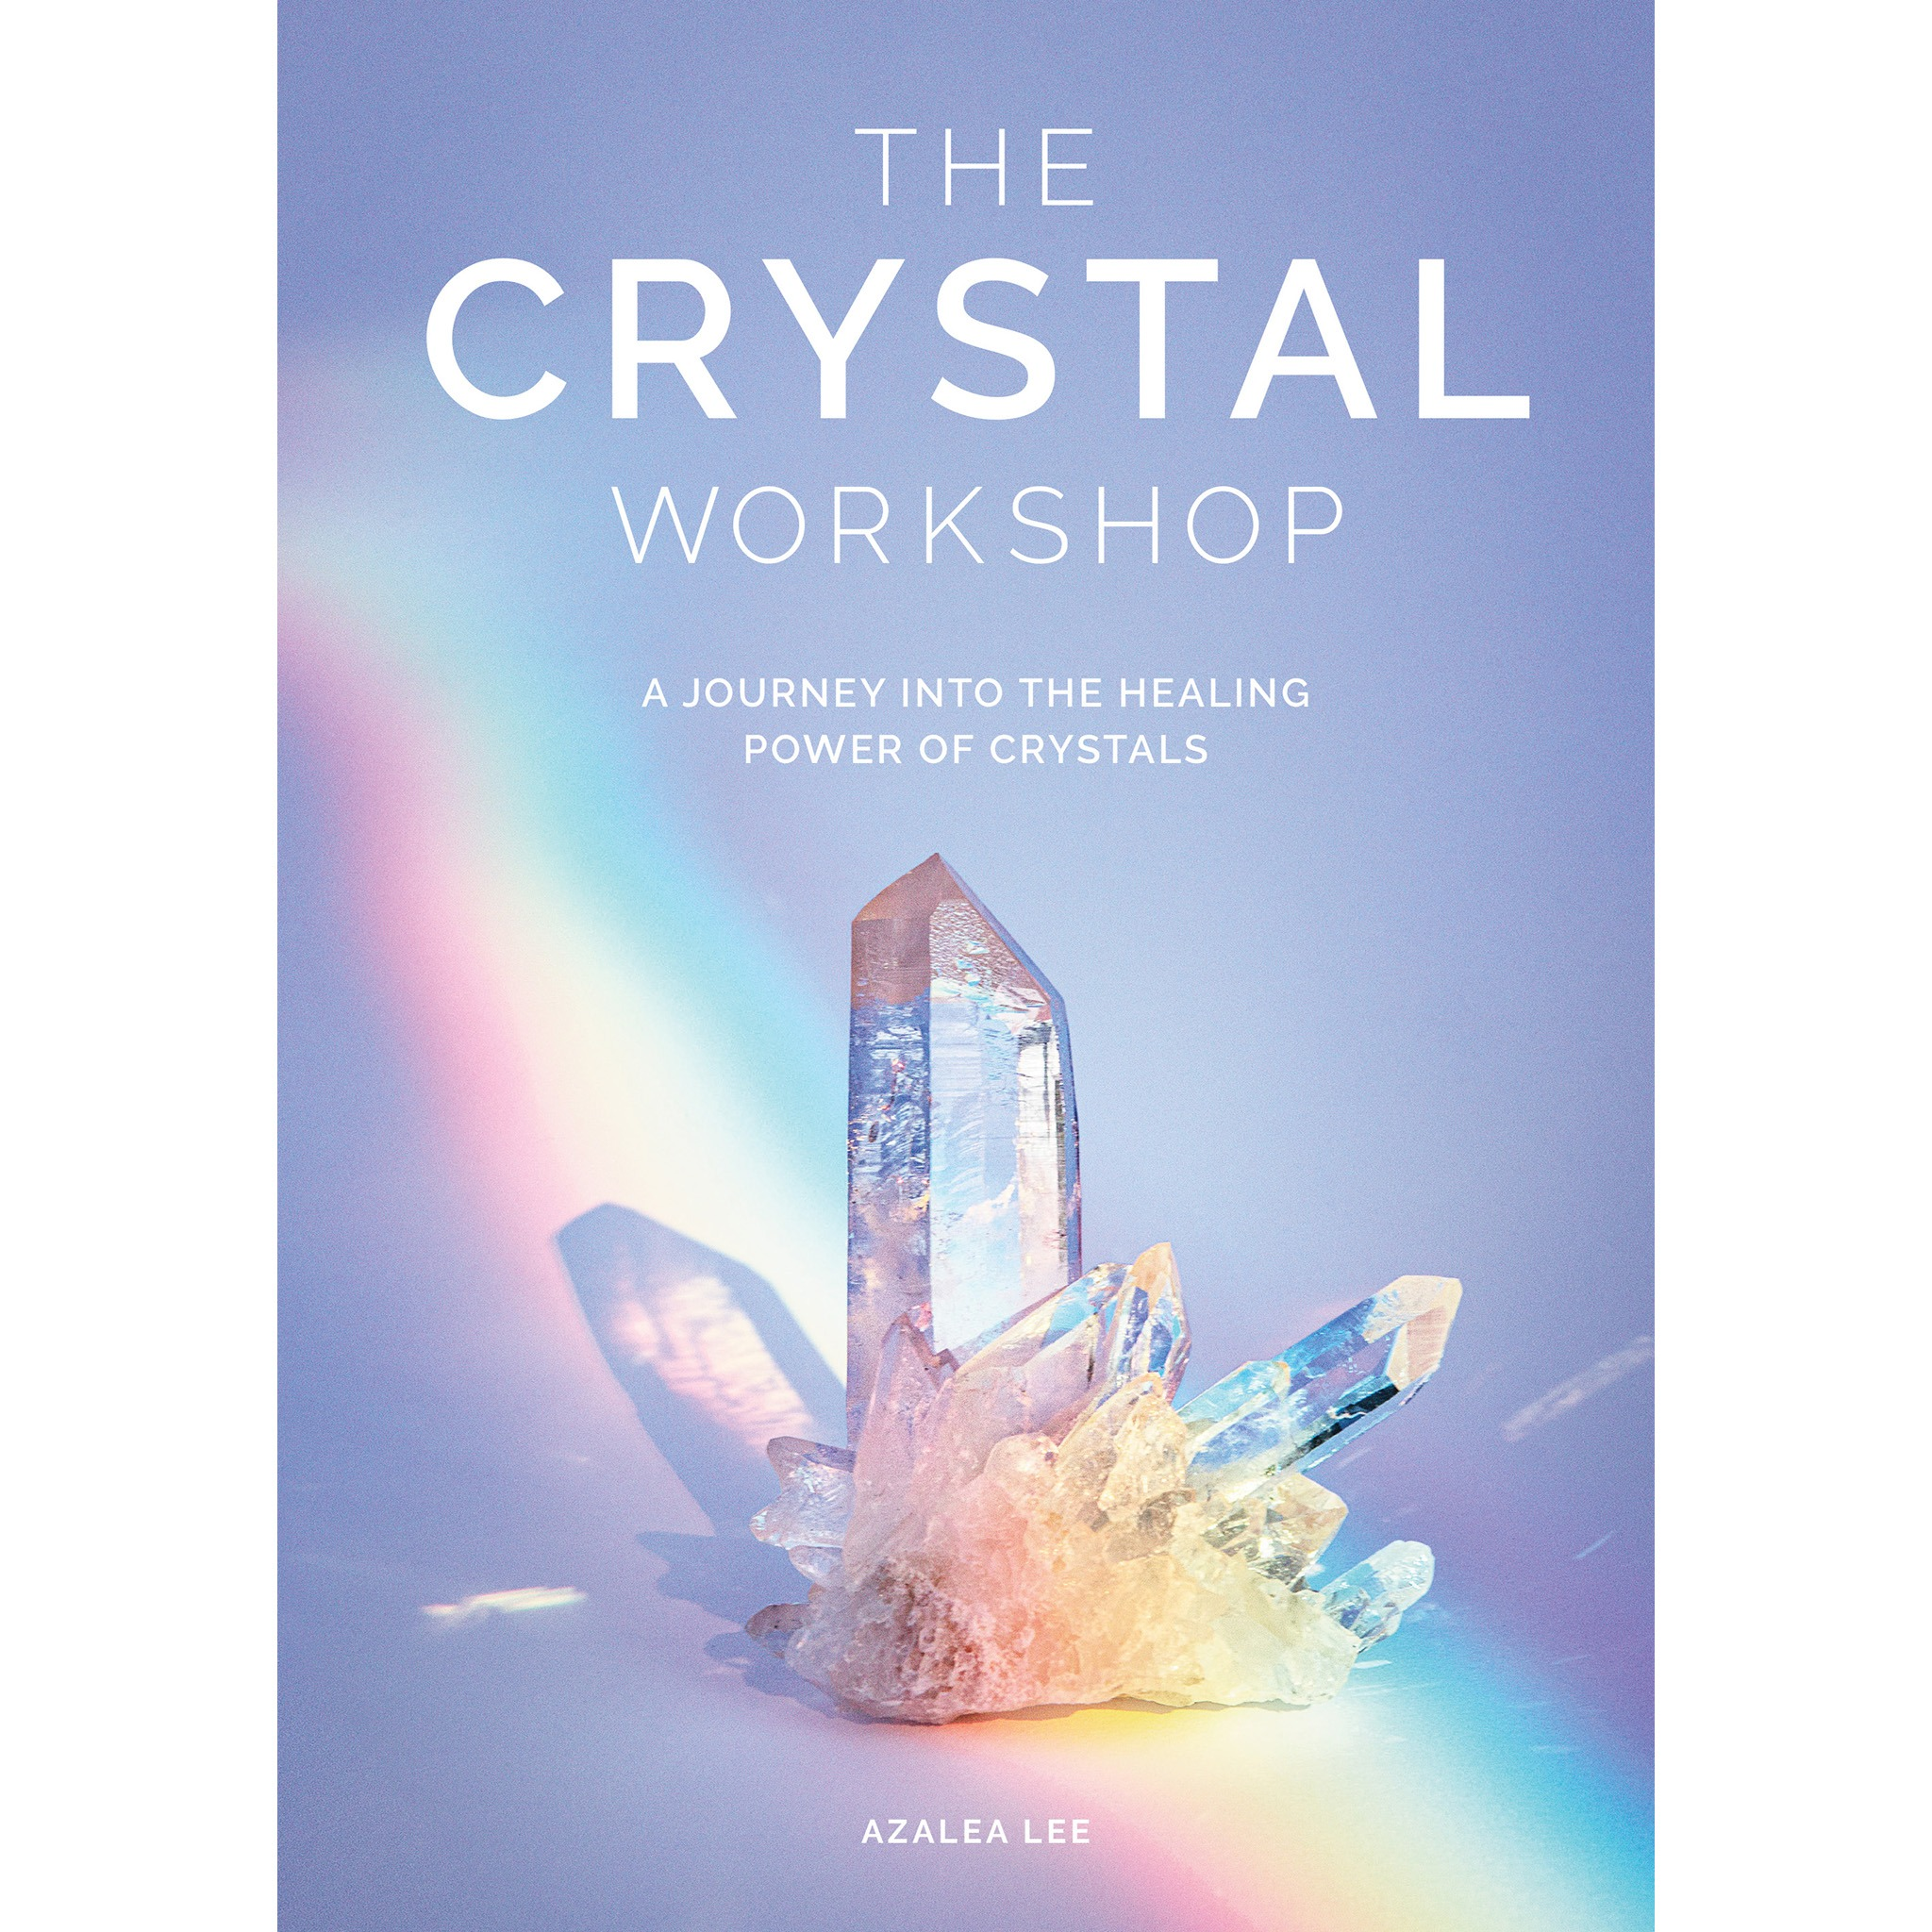 Get the book - THE CRYSTAL WORKSHOP